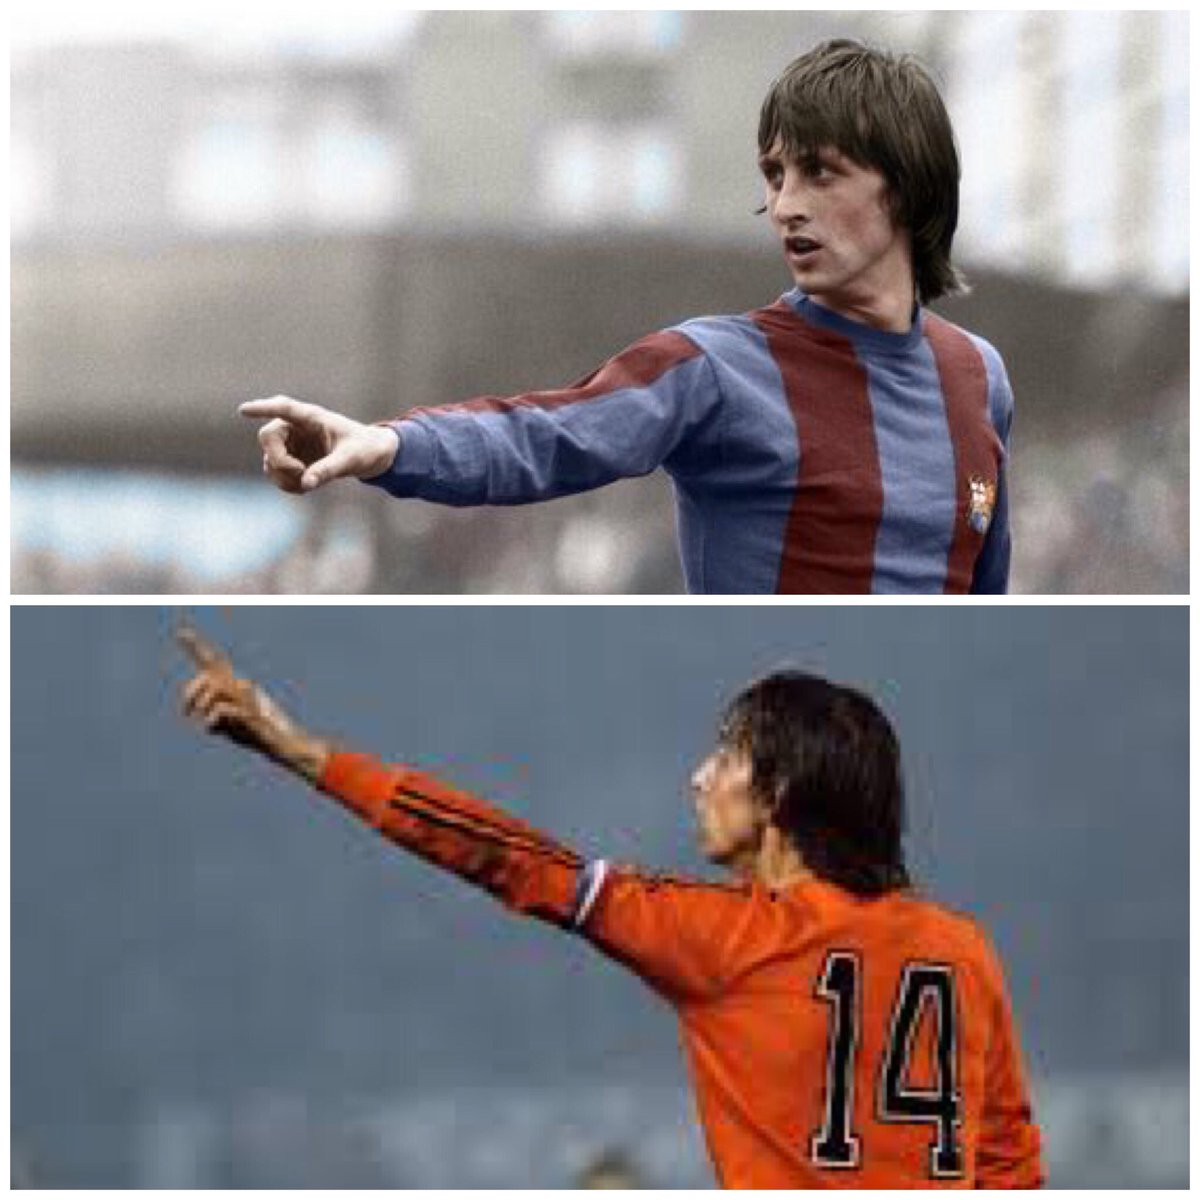 Different shirt, same #Cruyff. #JohanCruyff was contracted by @FCBarcelona at the time of the #FIFA #WorldCup in #Germany. #Oranje74 #WM74 #Holland #Nederland #mundial https://t.co/Bf02v5Wl54